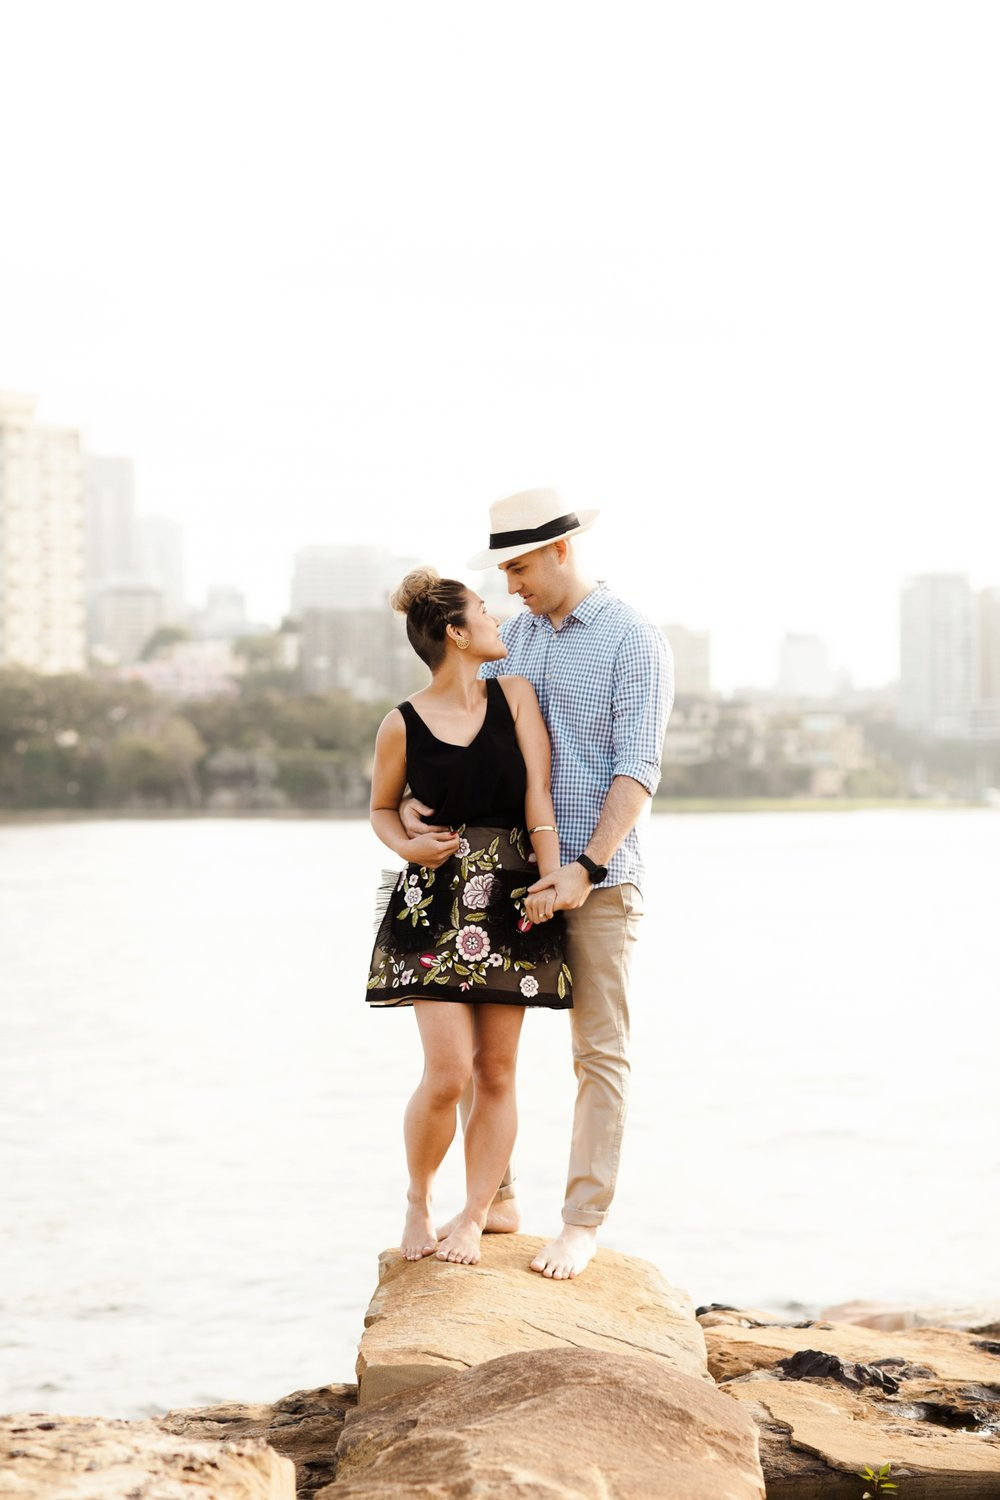 Couples session Pyrmont Photography by Mr Edwards Sydney_3515.jpg